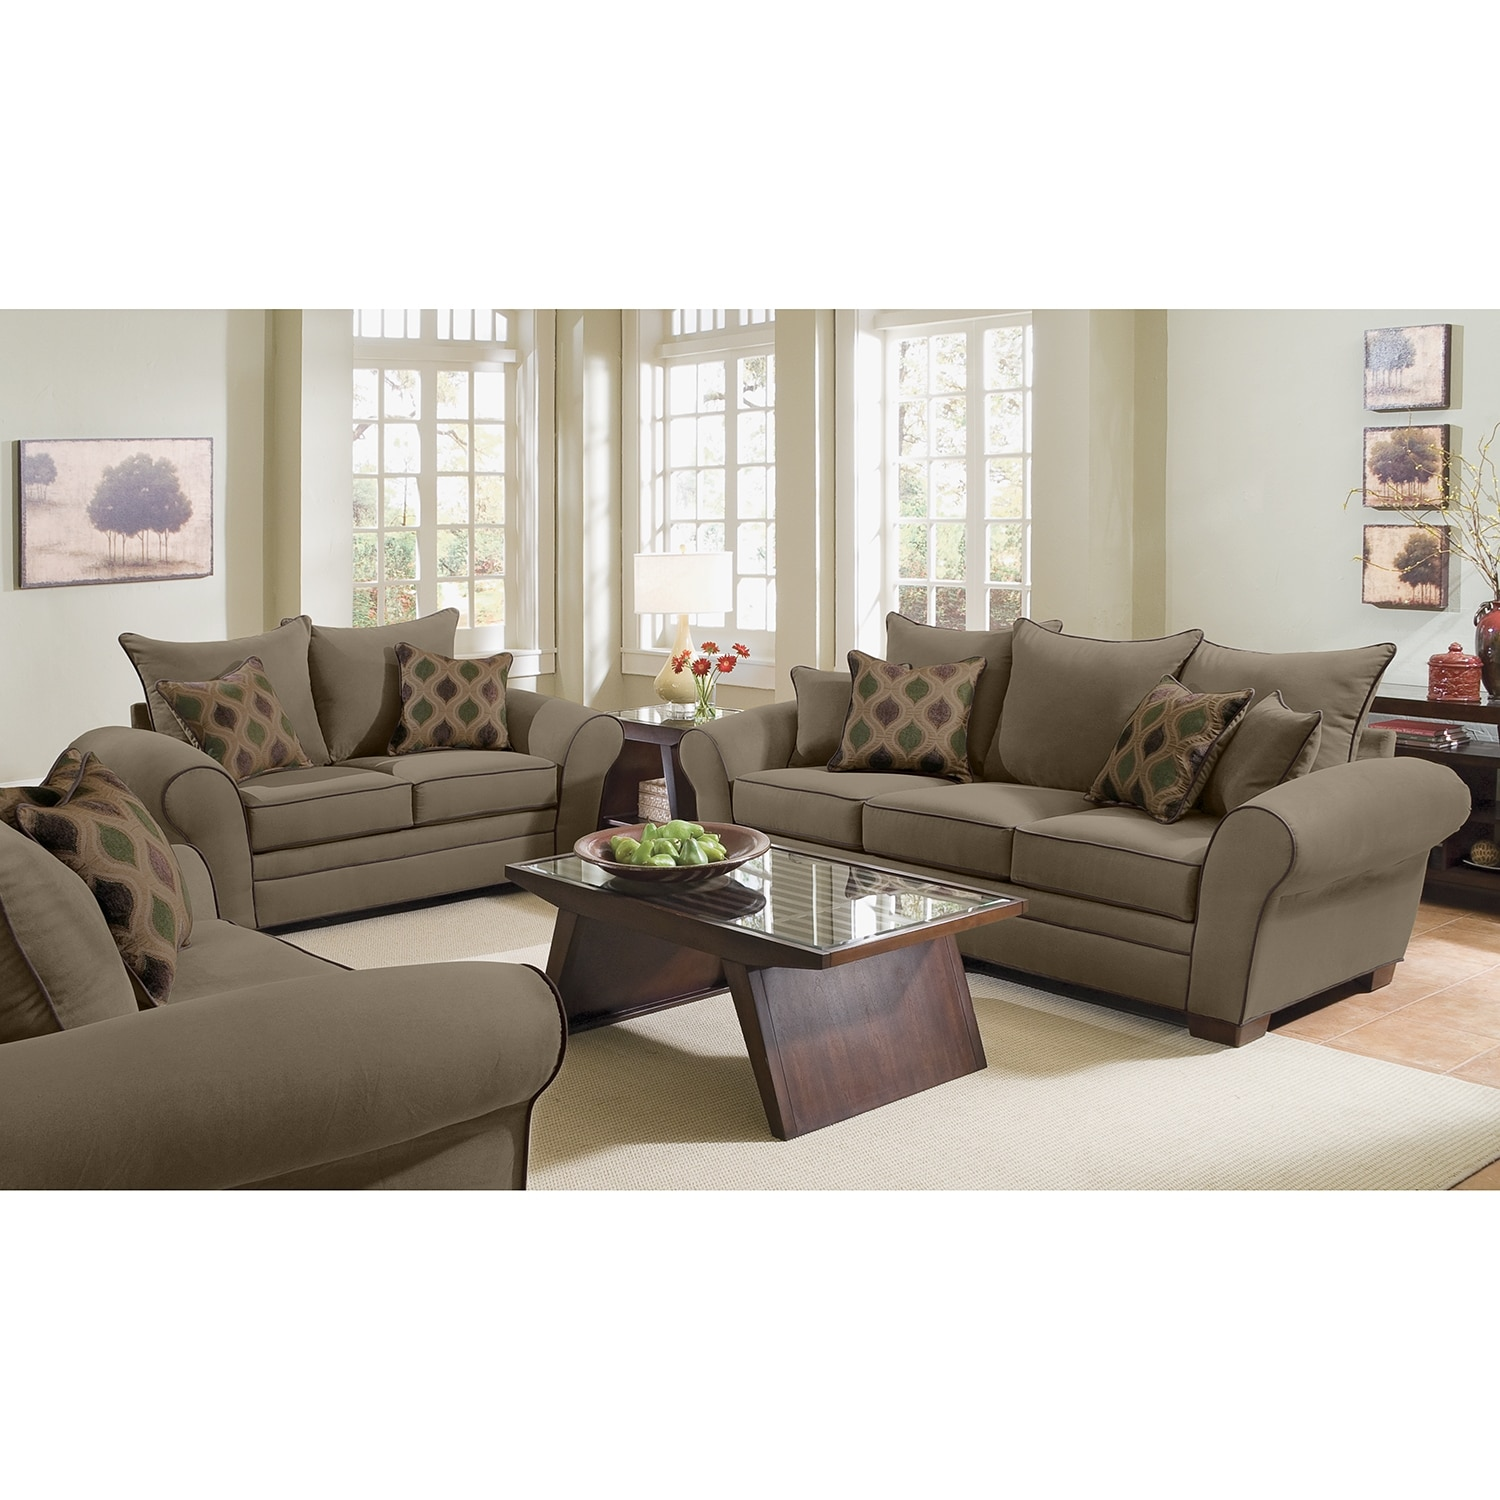 Rendezvous 2 Pc Living Room Value City Furniture